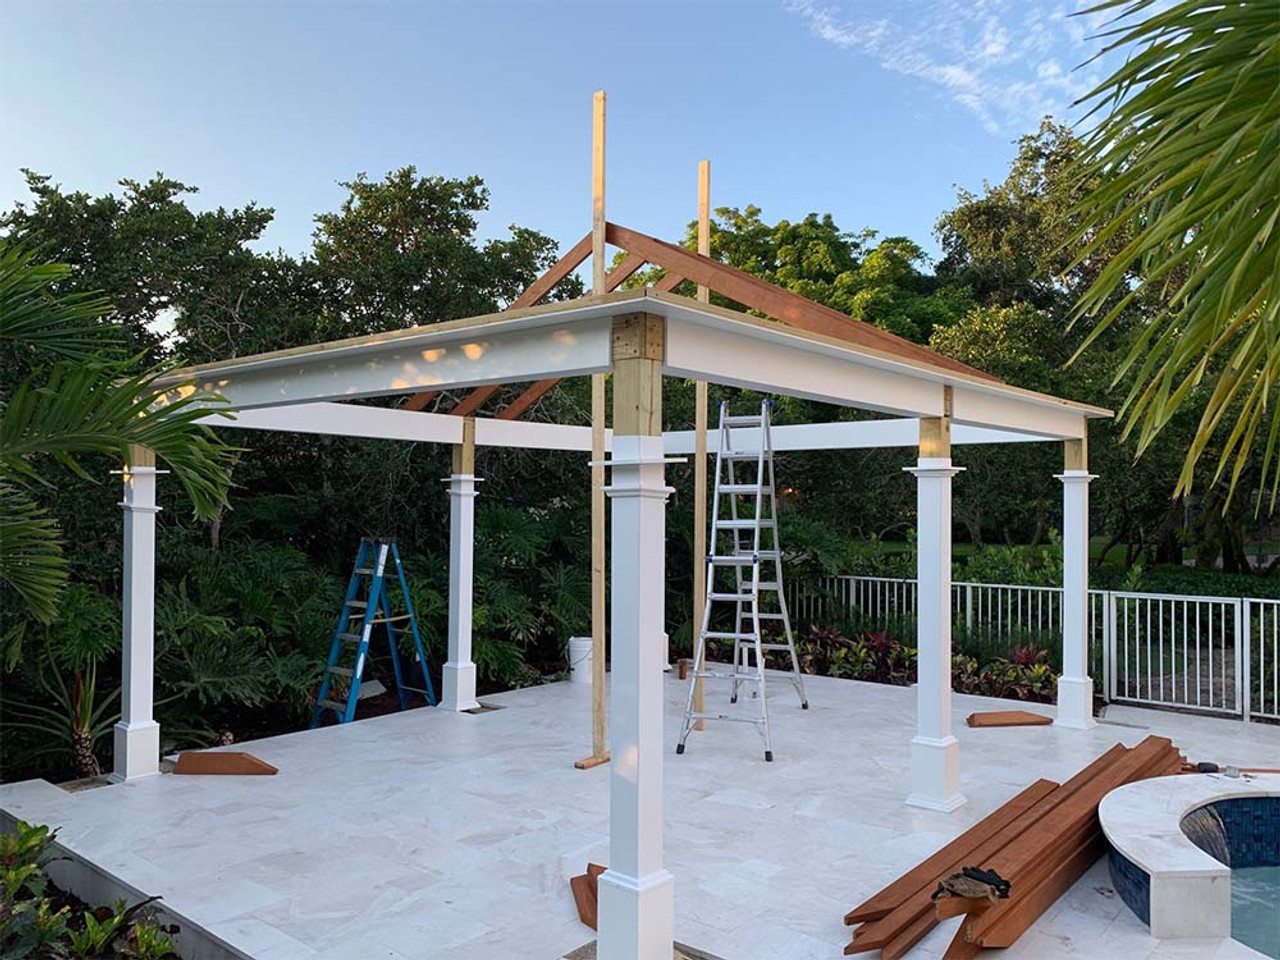 Step by Step this Vinyl Pavilion comes together